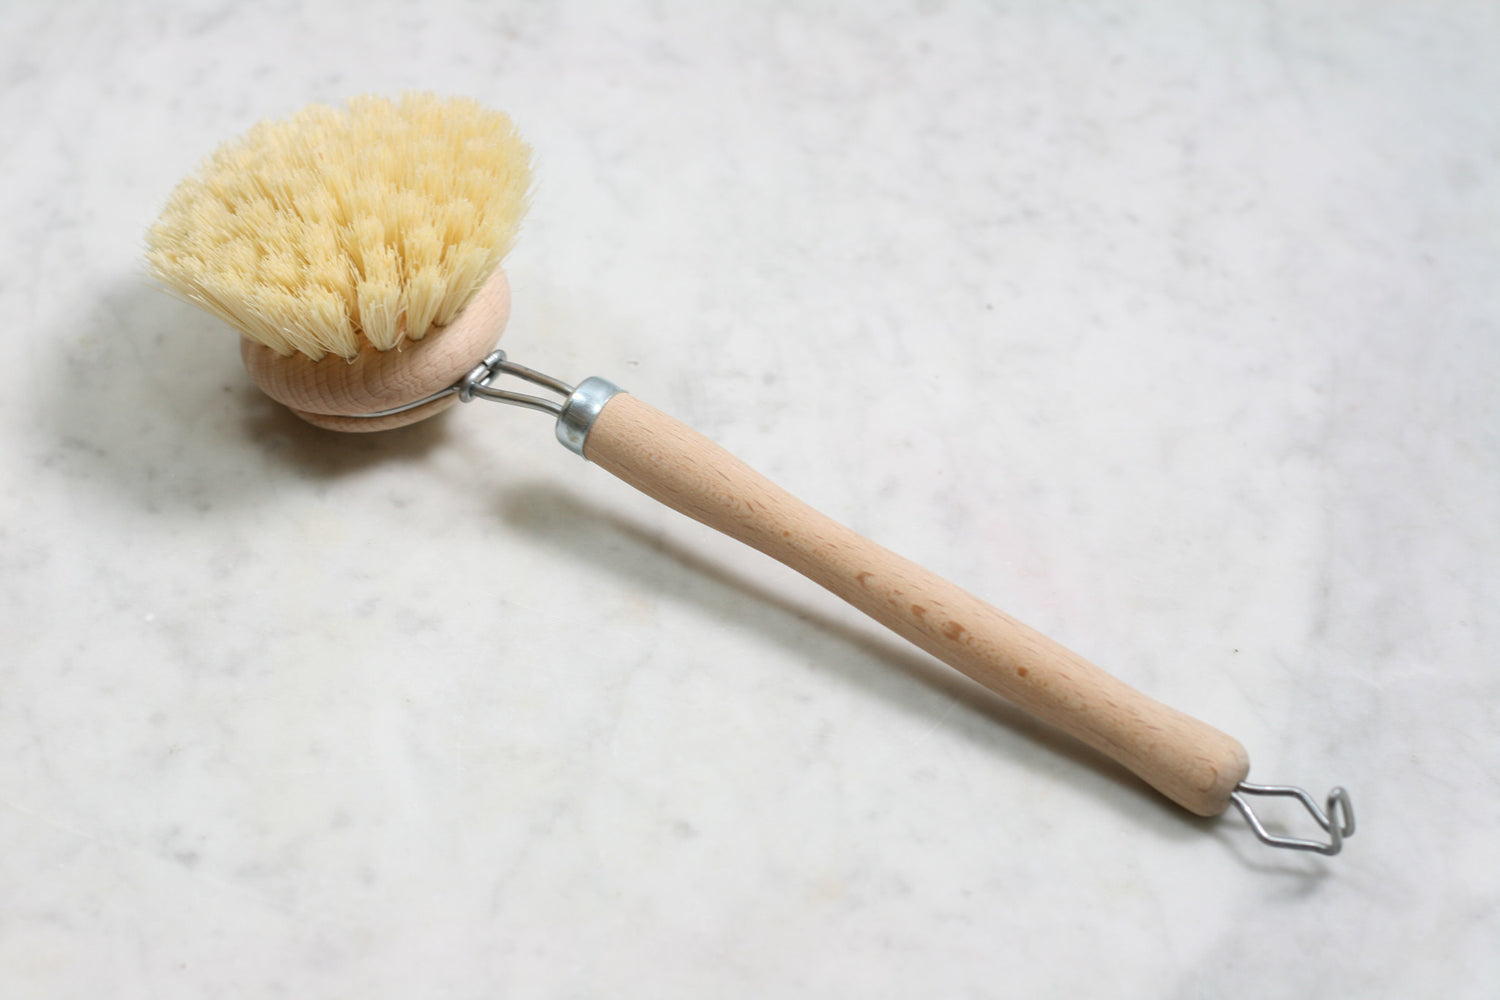 Hard Dish Brush Burstenhaus Redecker